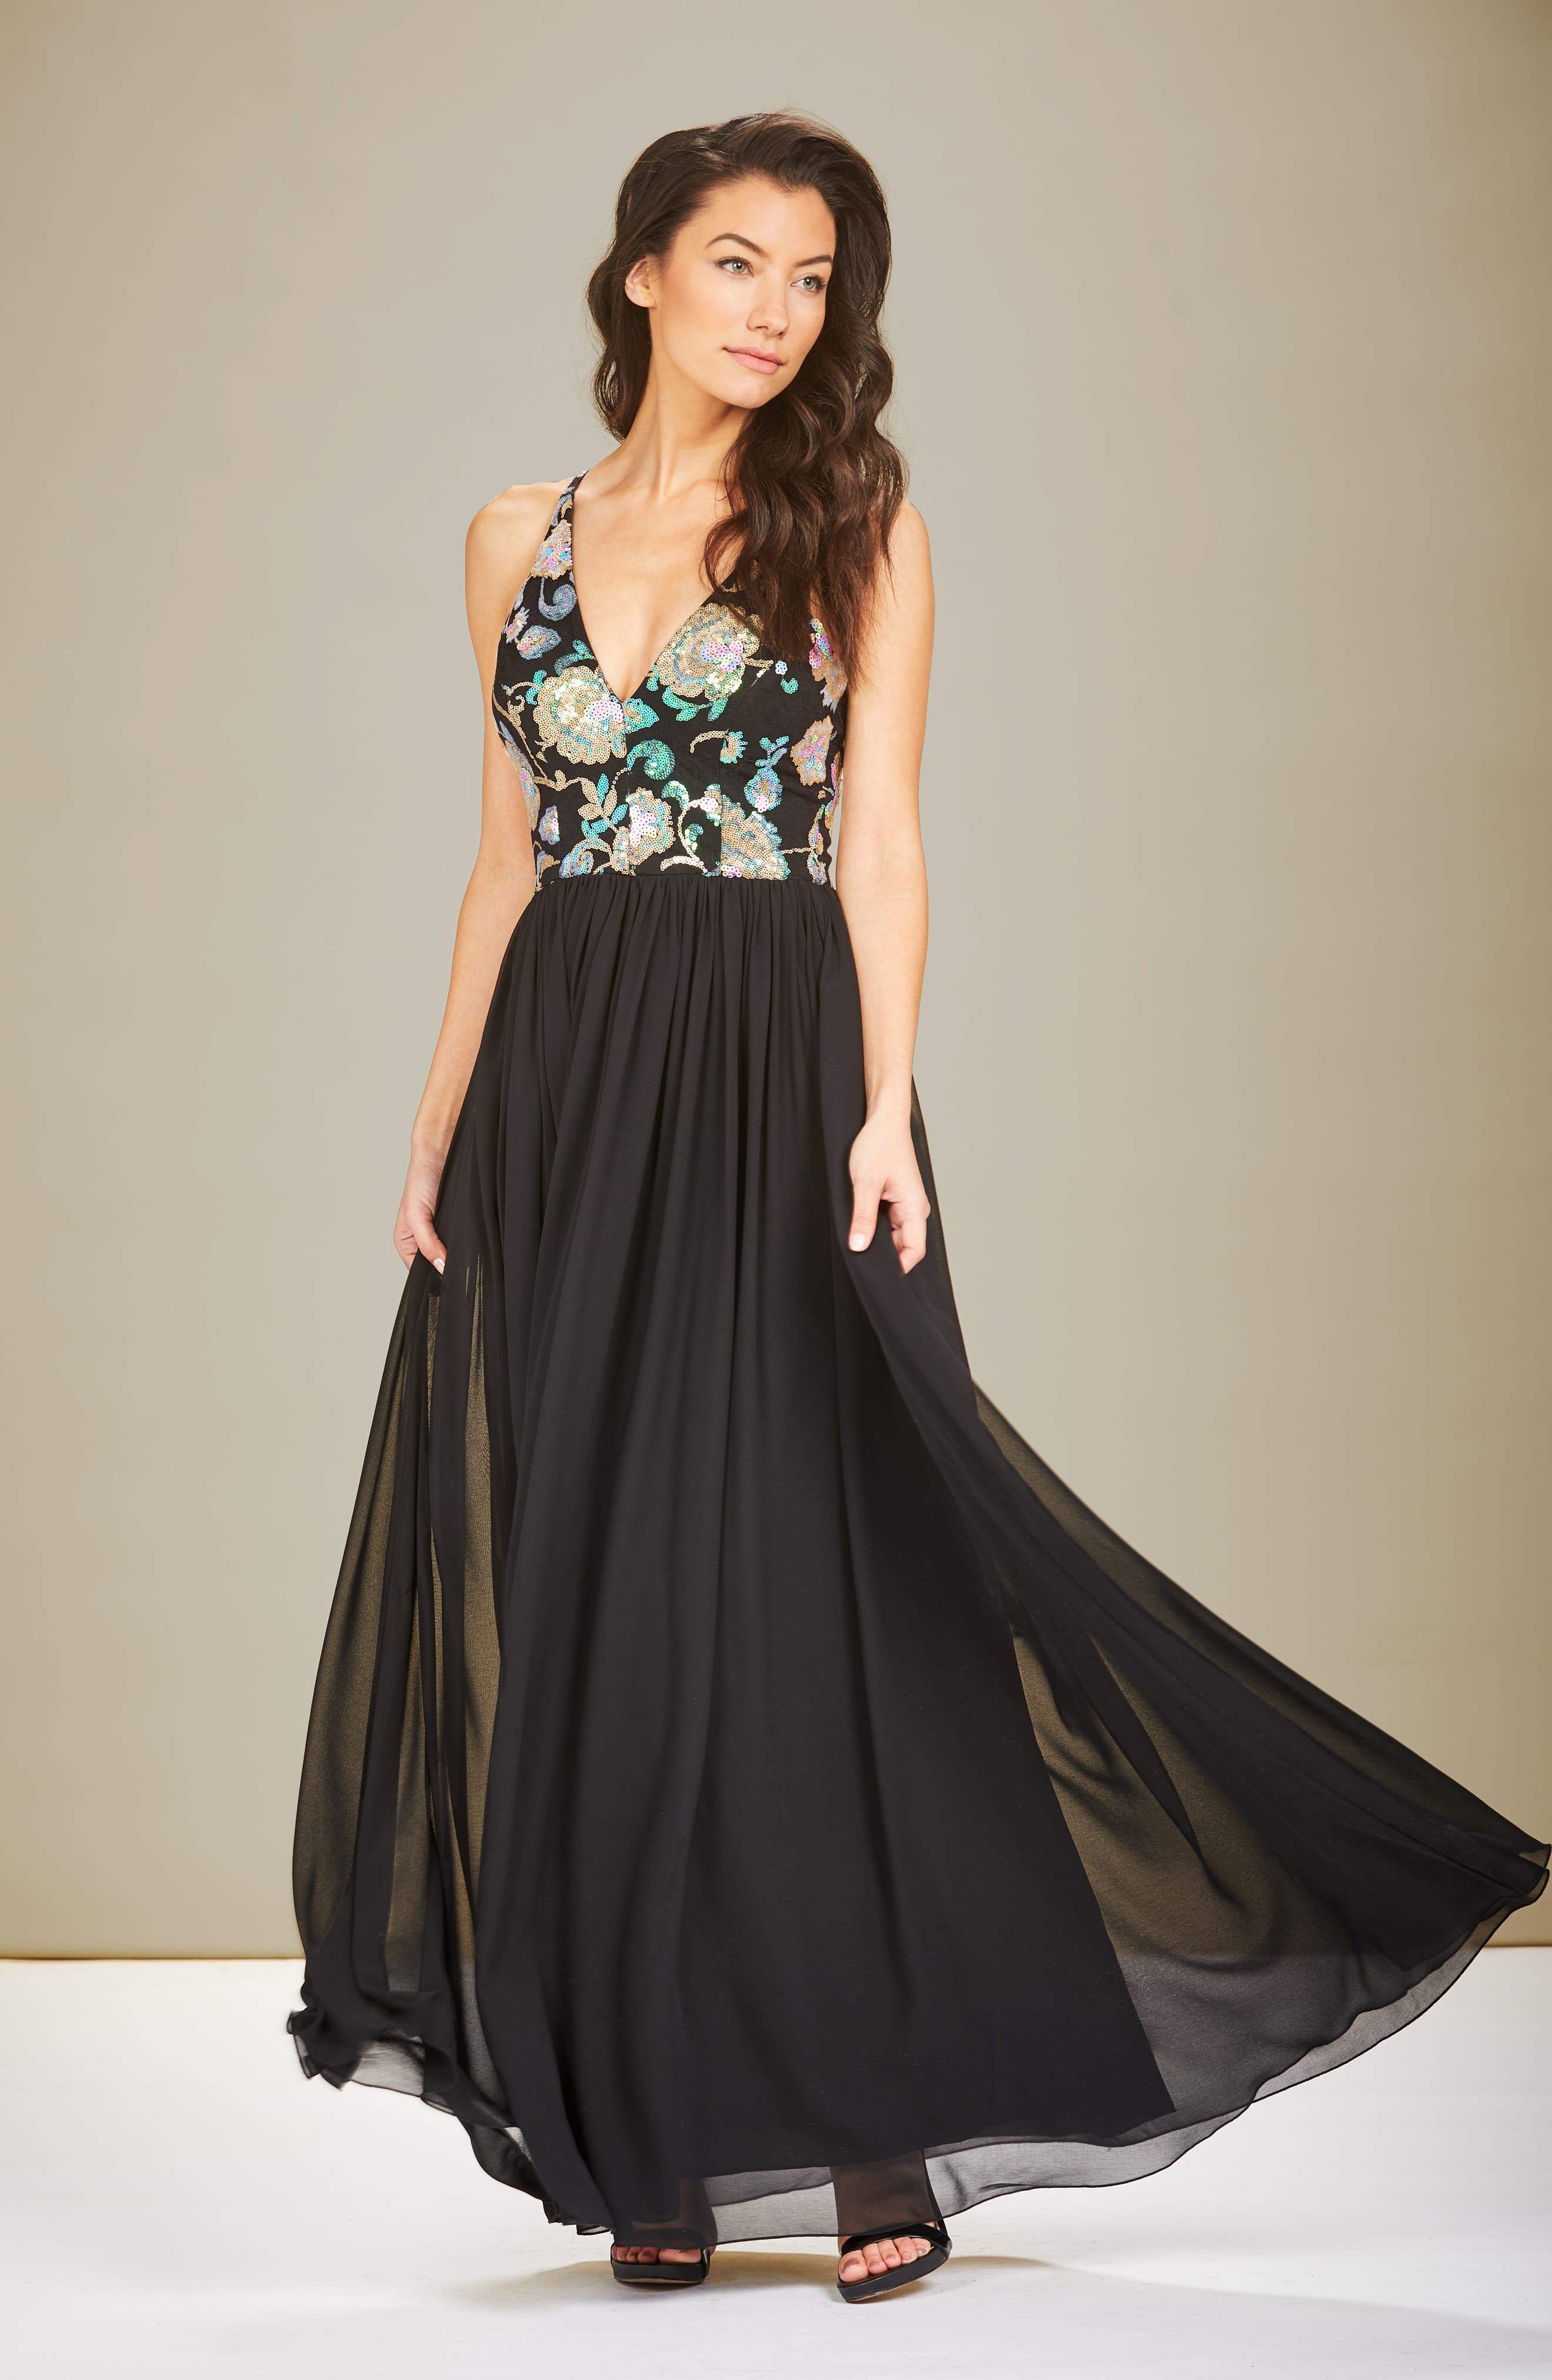 Adriana Sequin Bodice Gown,                             Alternate thumbnail 2, color,                             Black/ Iridescent Floral